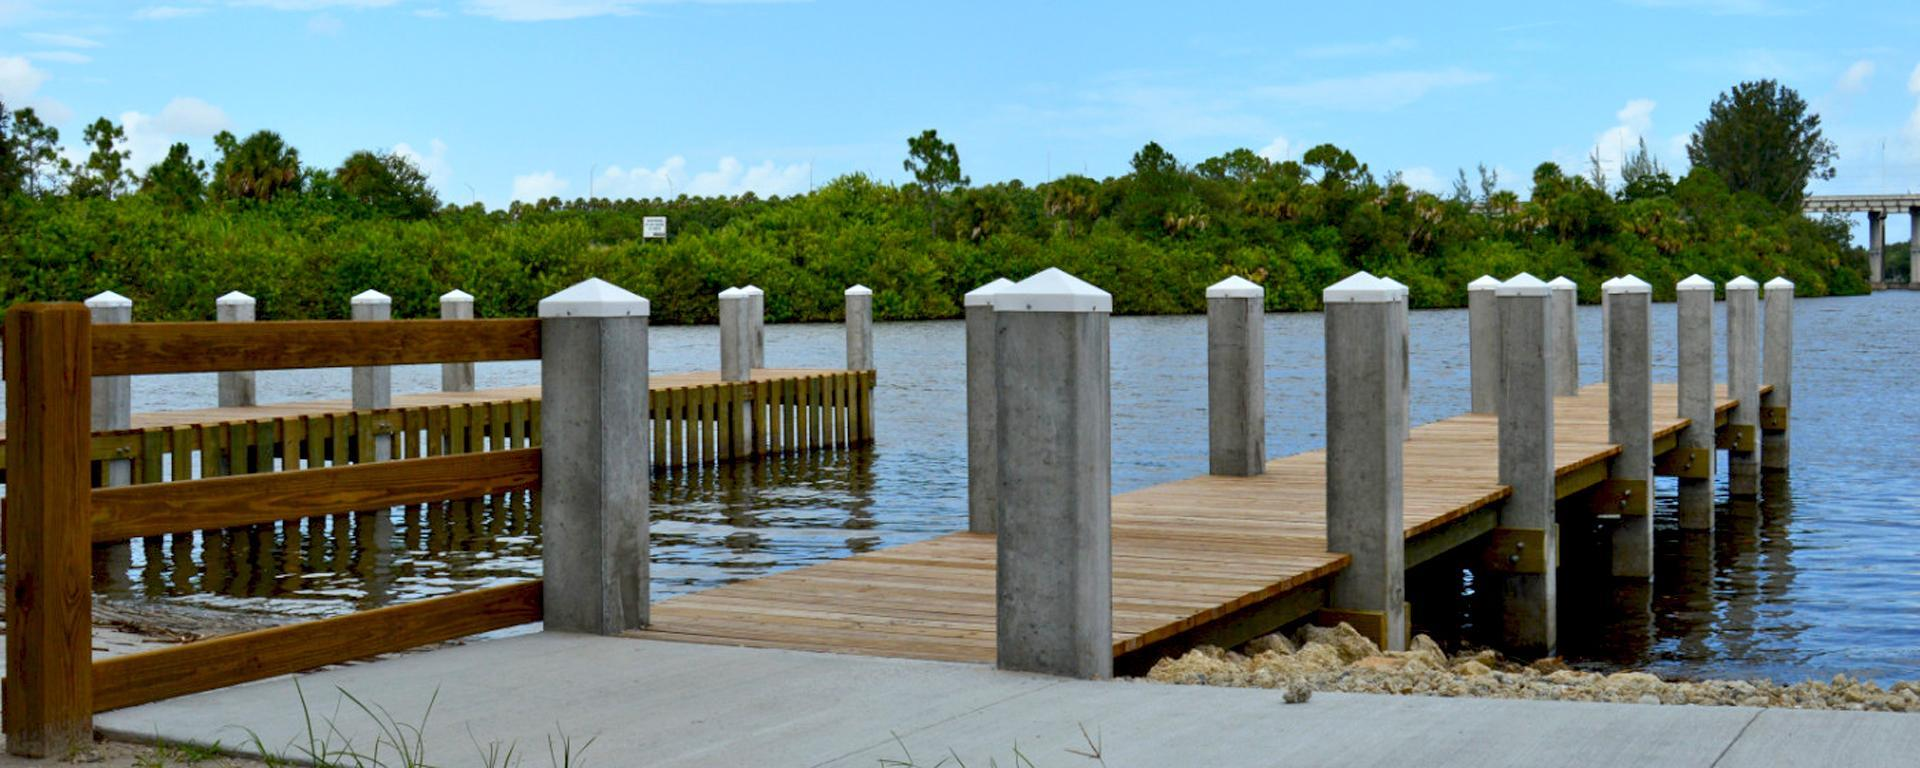 A Boat Ramp at Phipps Park Campground